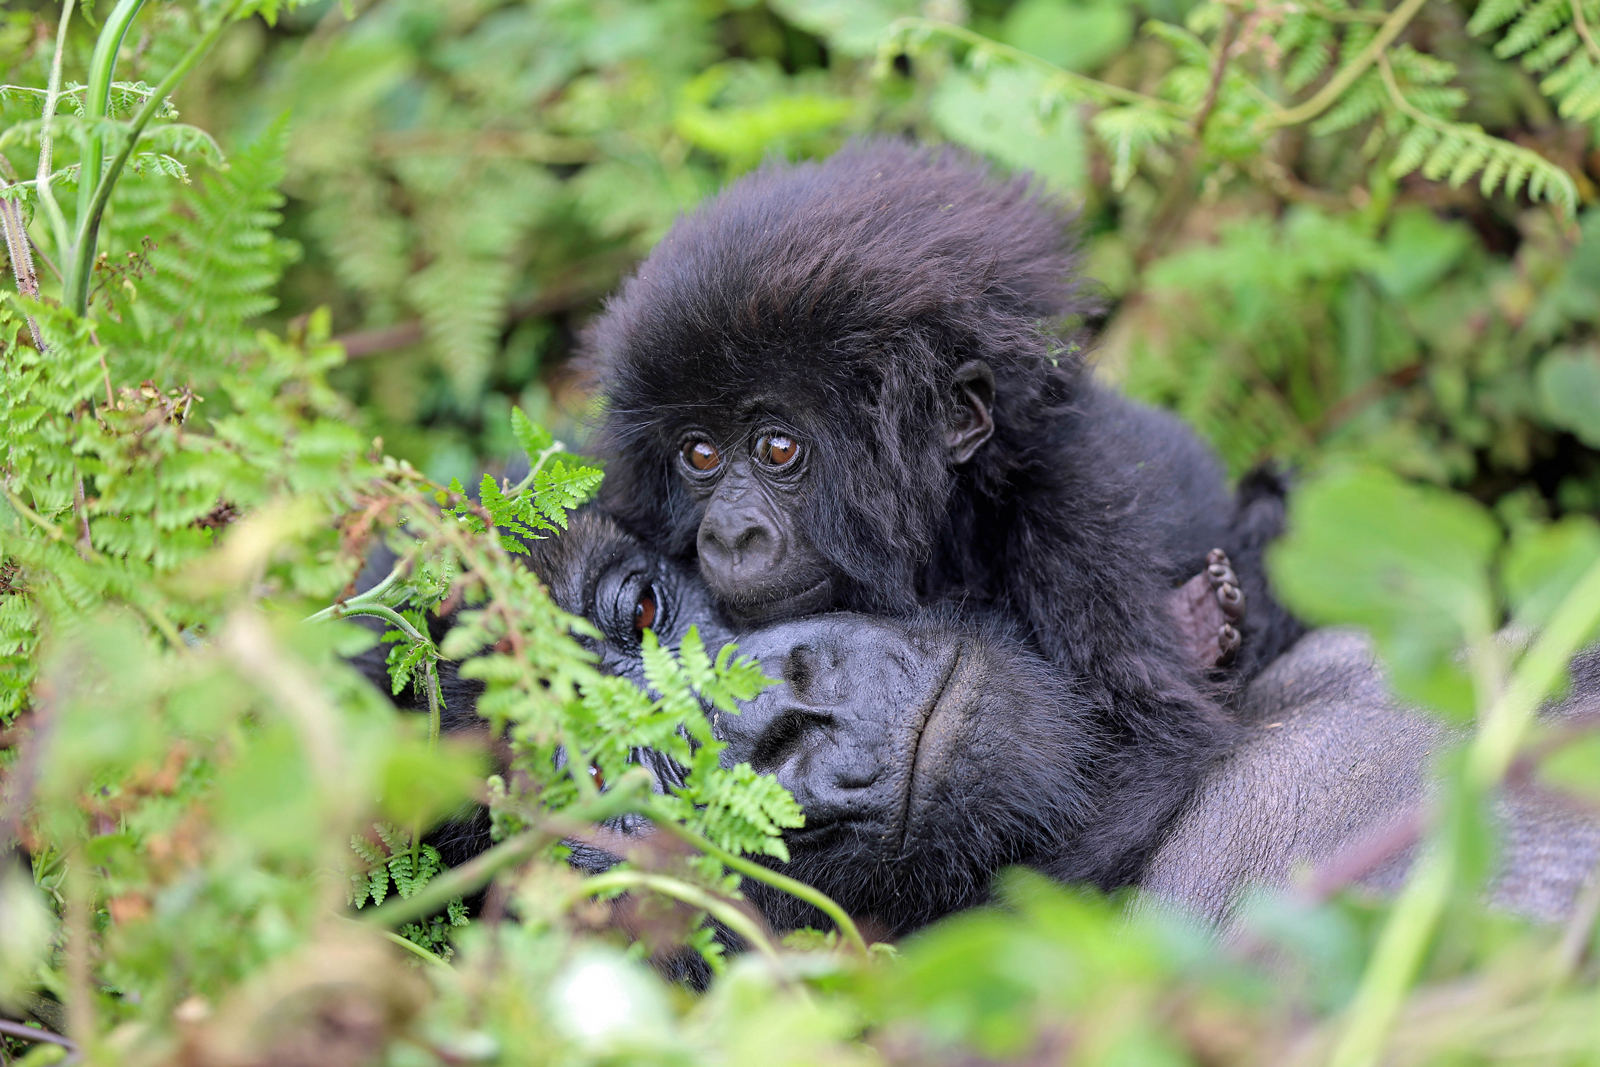 A gorilla baby with its mother in Volcanoes National Park, Rwanda ©Matthias Alter